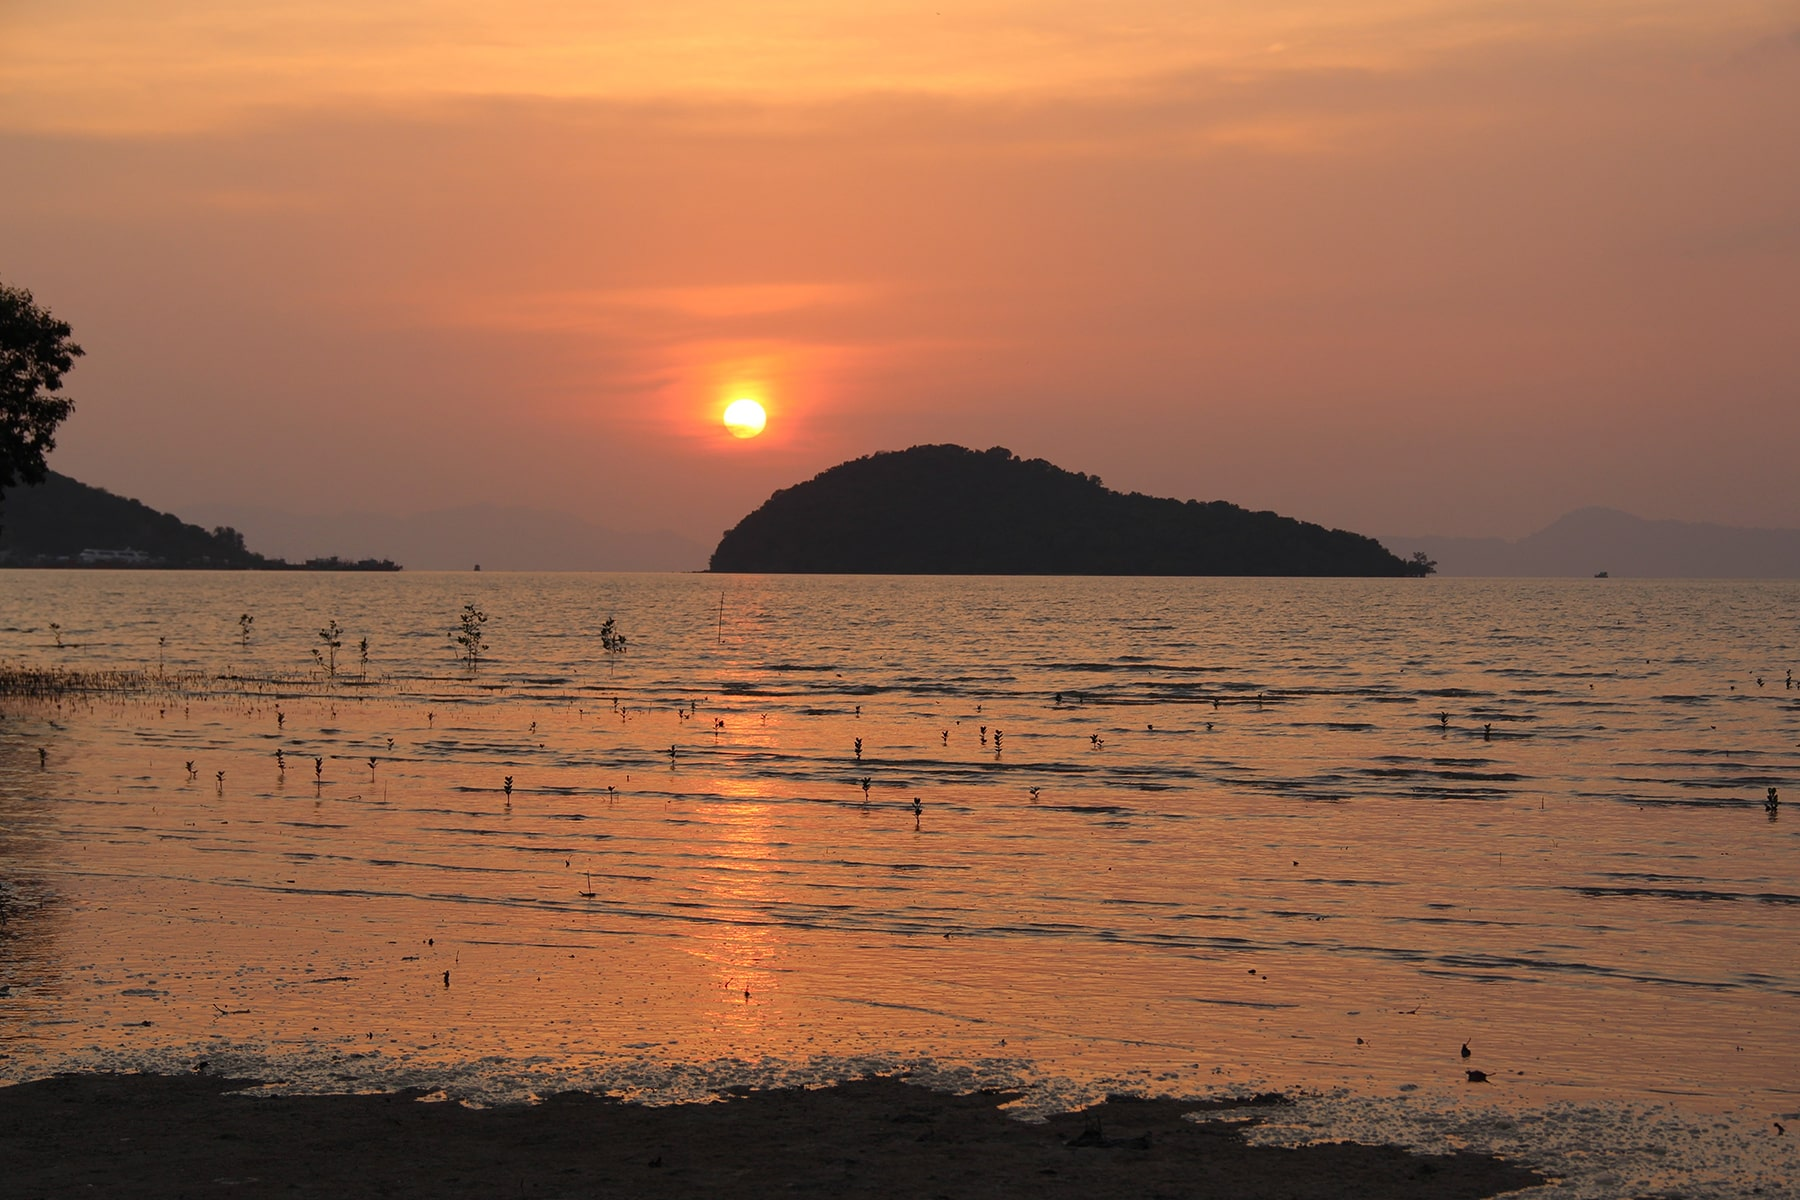 Sunset in Koh Yao Yai with the shadow of an island